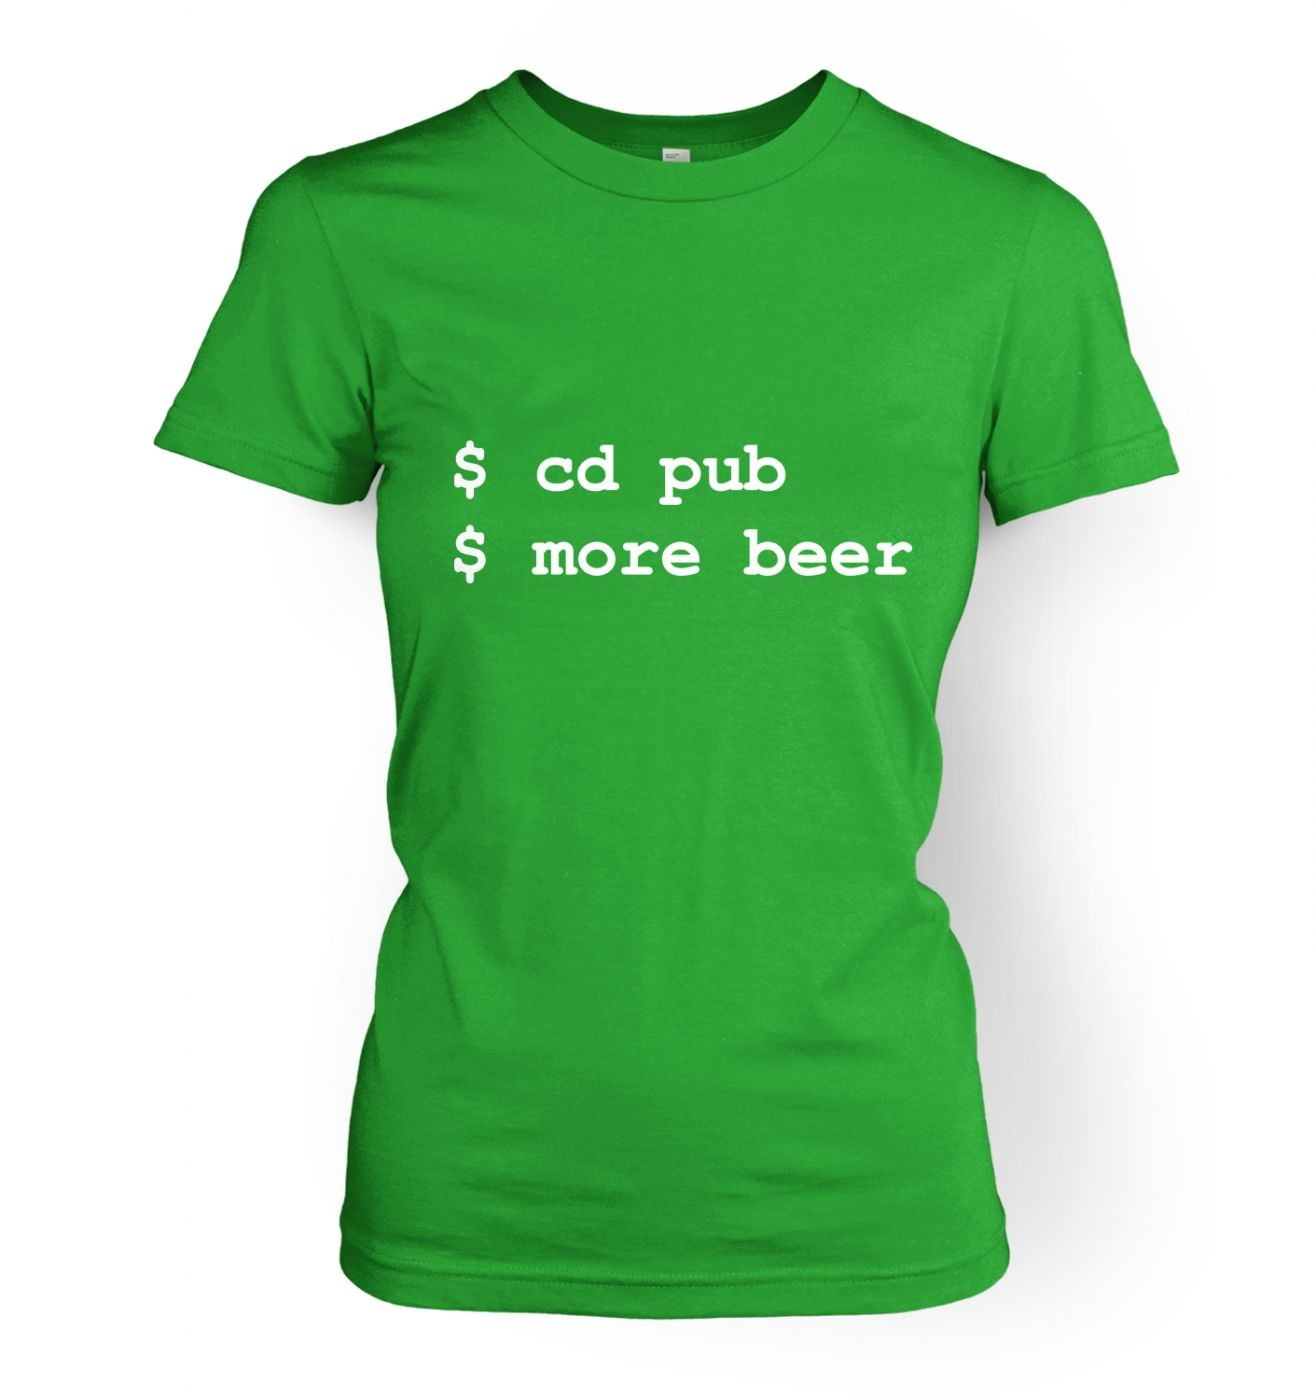 More Beer Linux women's t-shirt